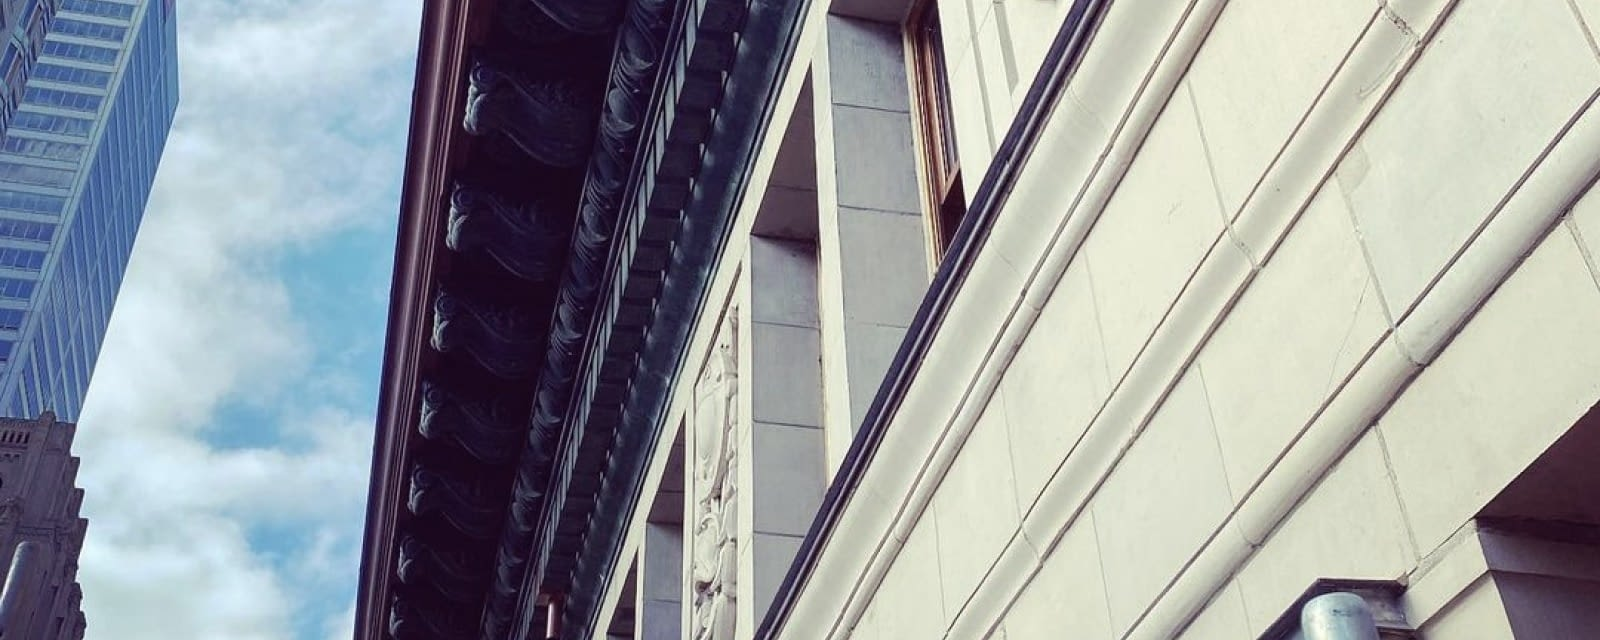 Contact Roof Tile Management - Close-up of masonry trim on a building in downtown Toronto